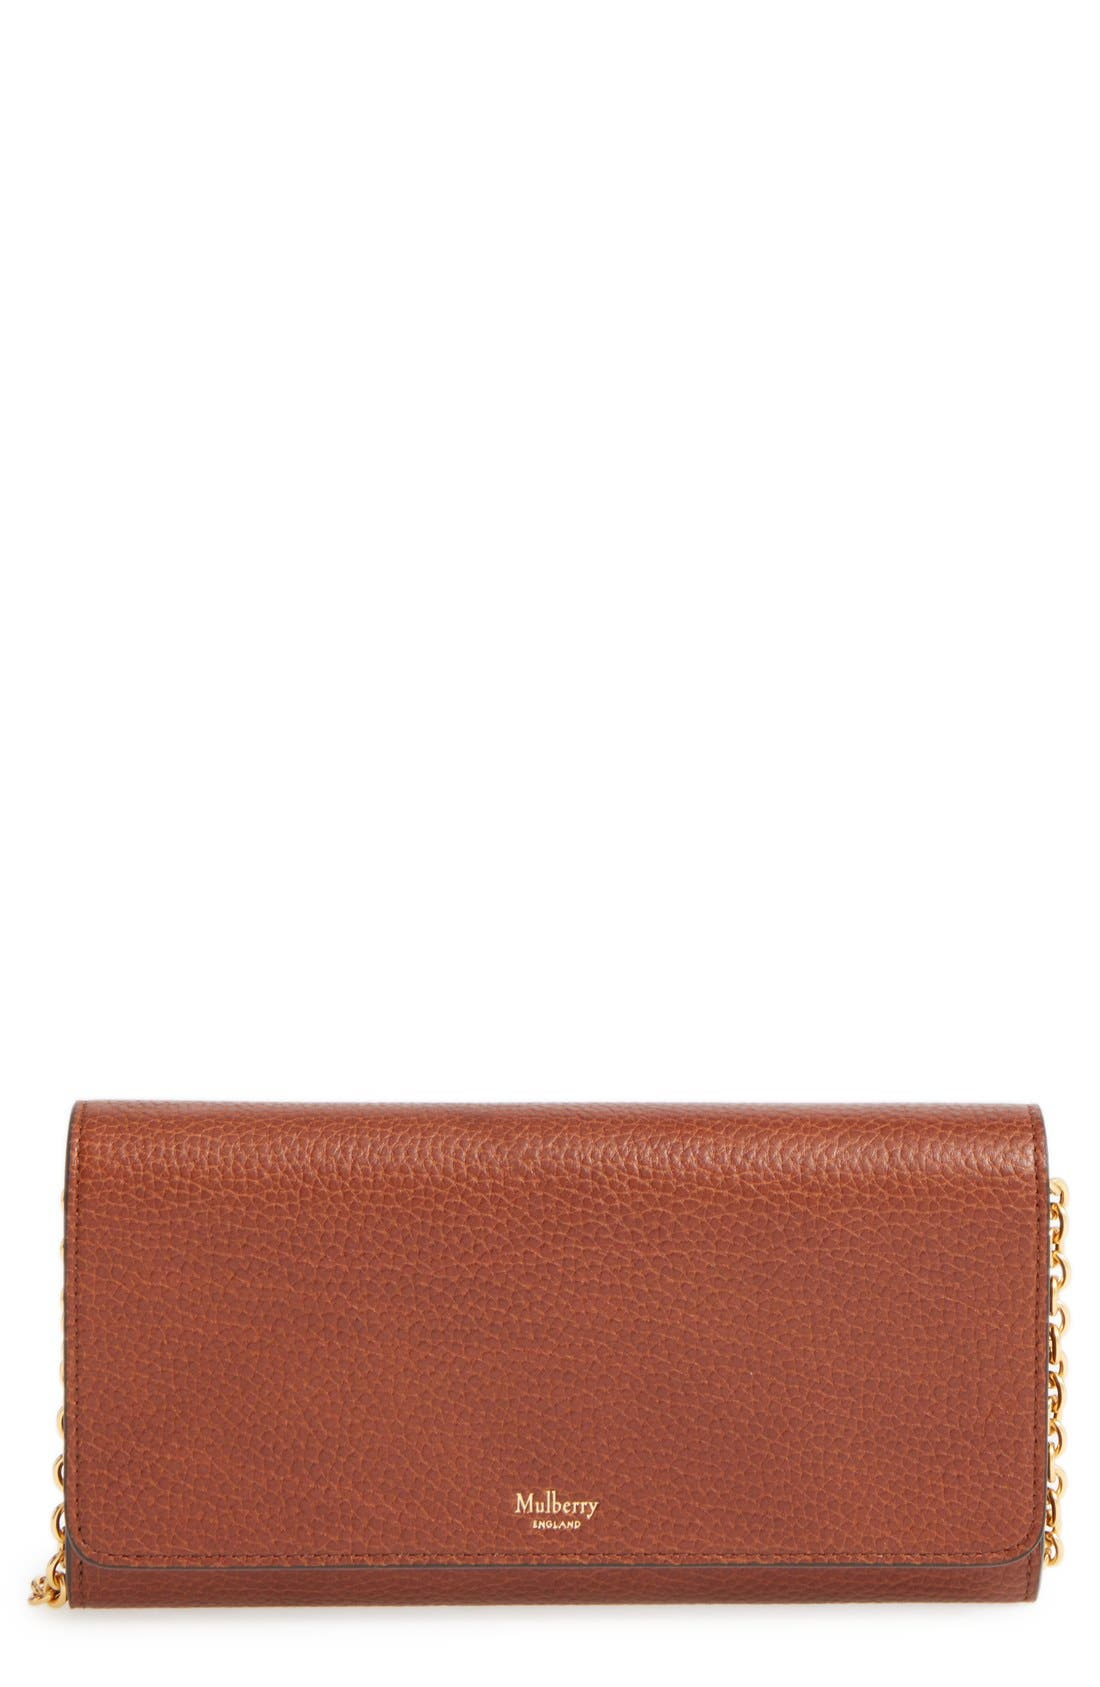 Main Image - Mulberry 'Continental - Classic' Convertible Leather Clutch